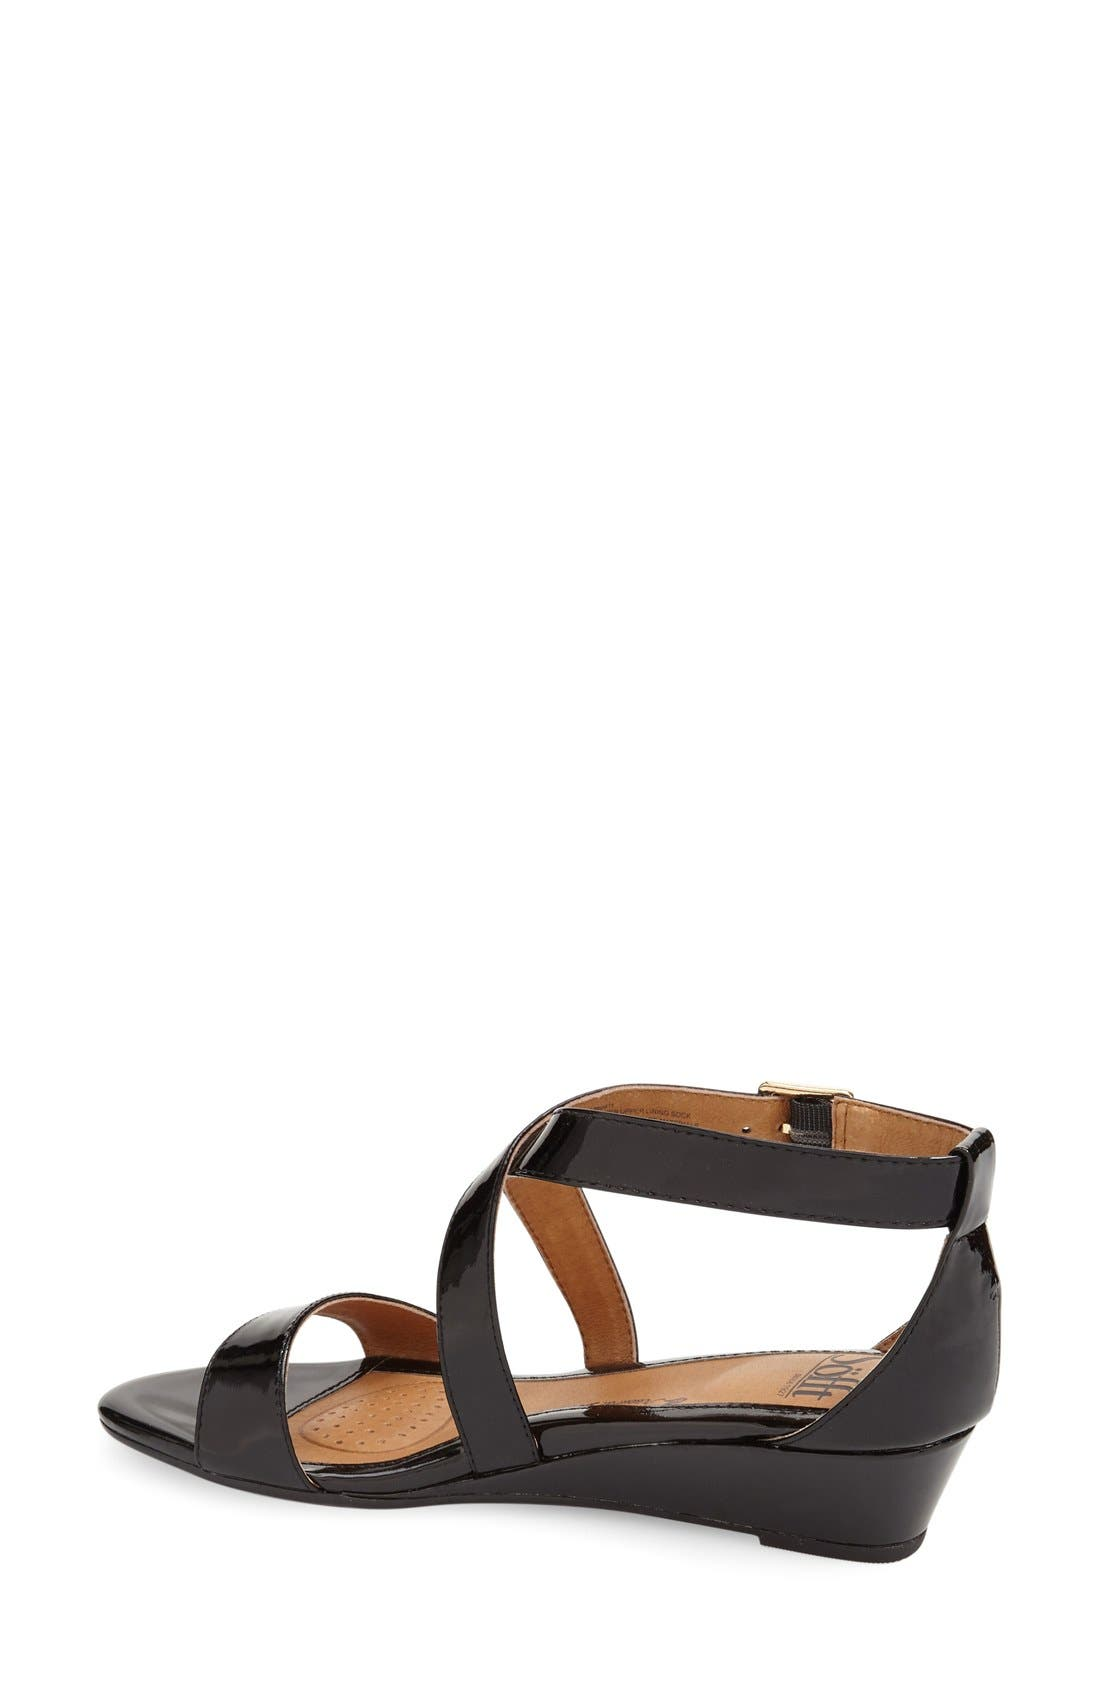 'Innis' Low Wedge Sandal,                             Alternate thumbnail 17, color,